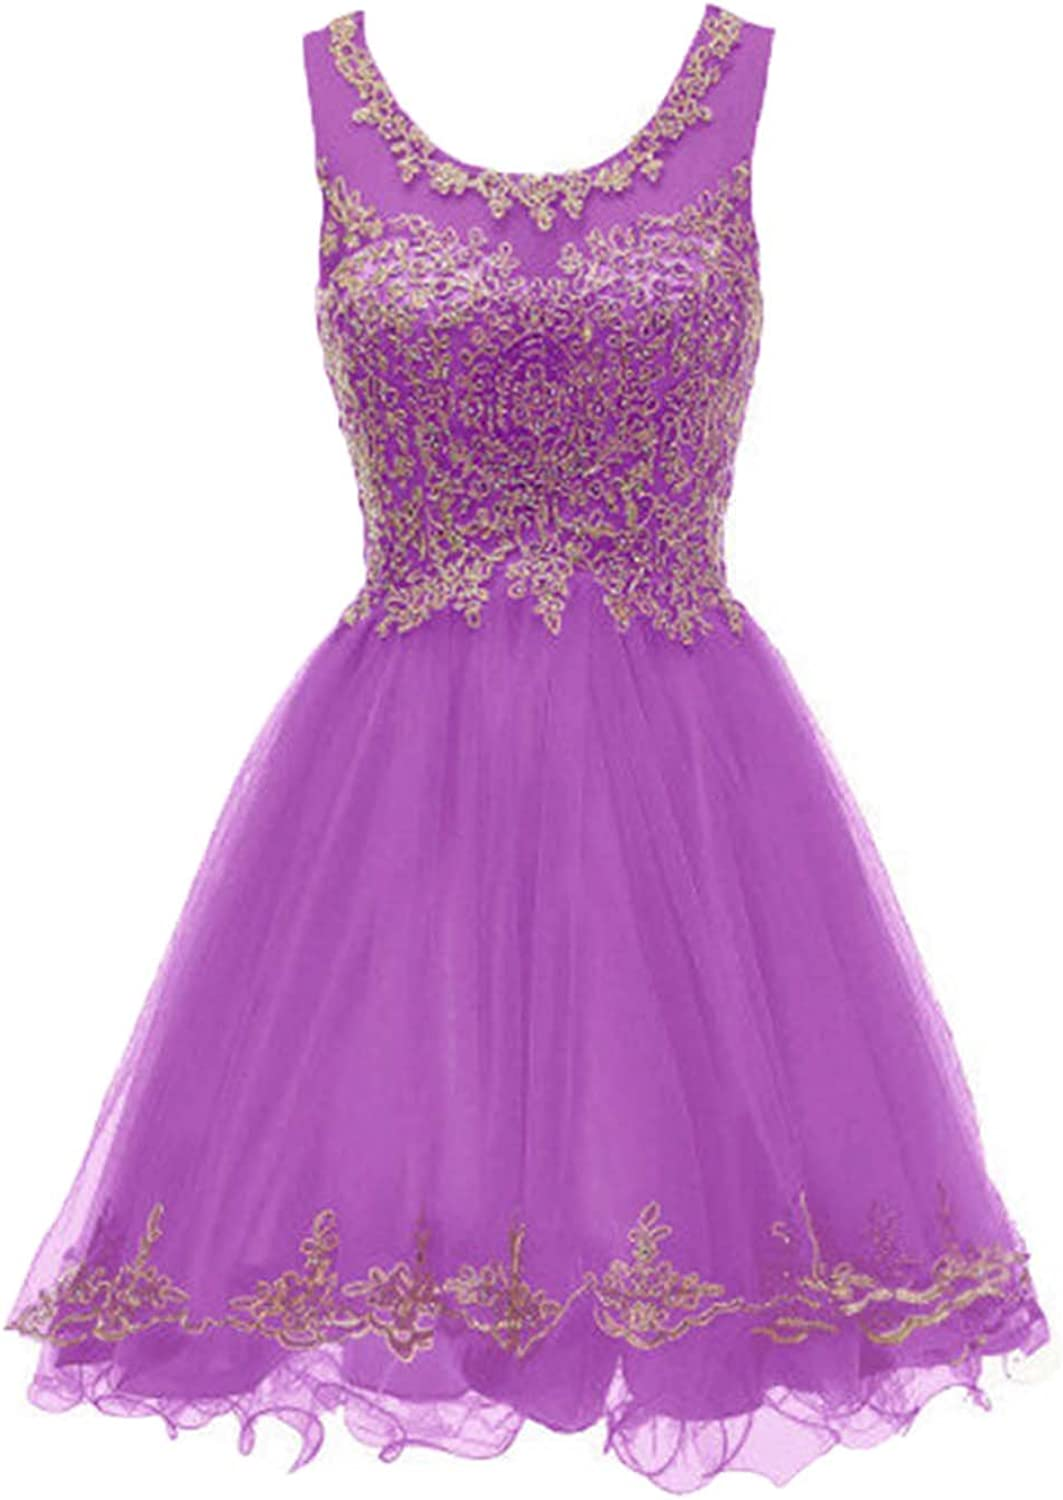 Huifany Short gold Lace Homecoming Dresses Beads Cocktail Prom Party Gowns